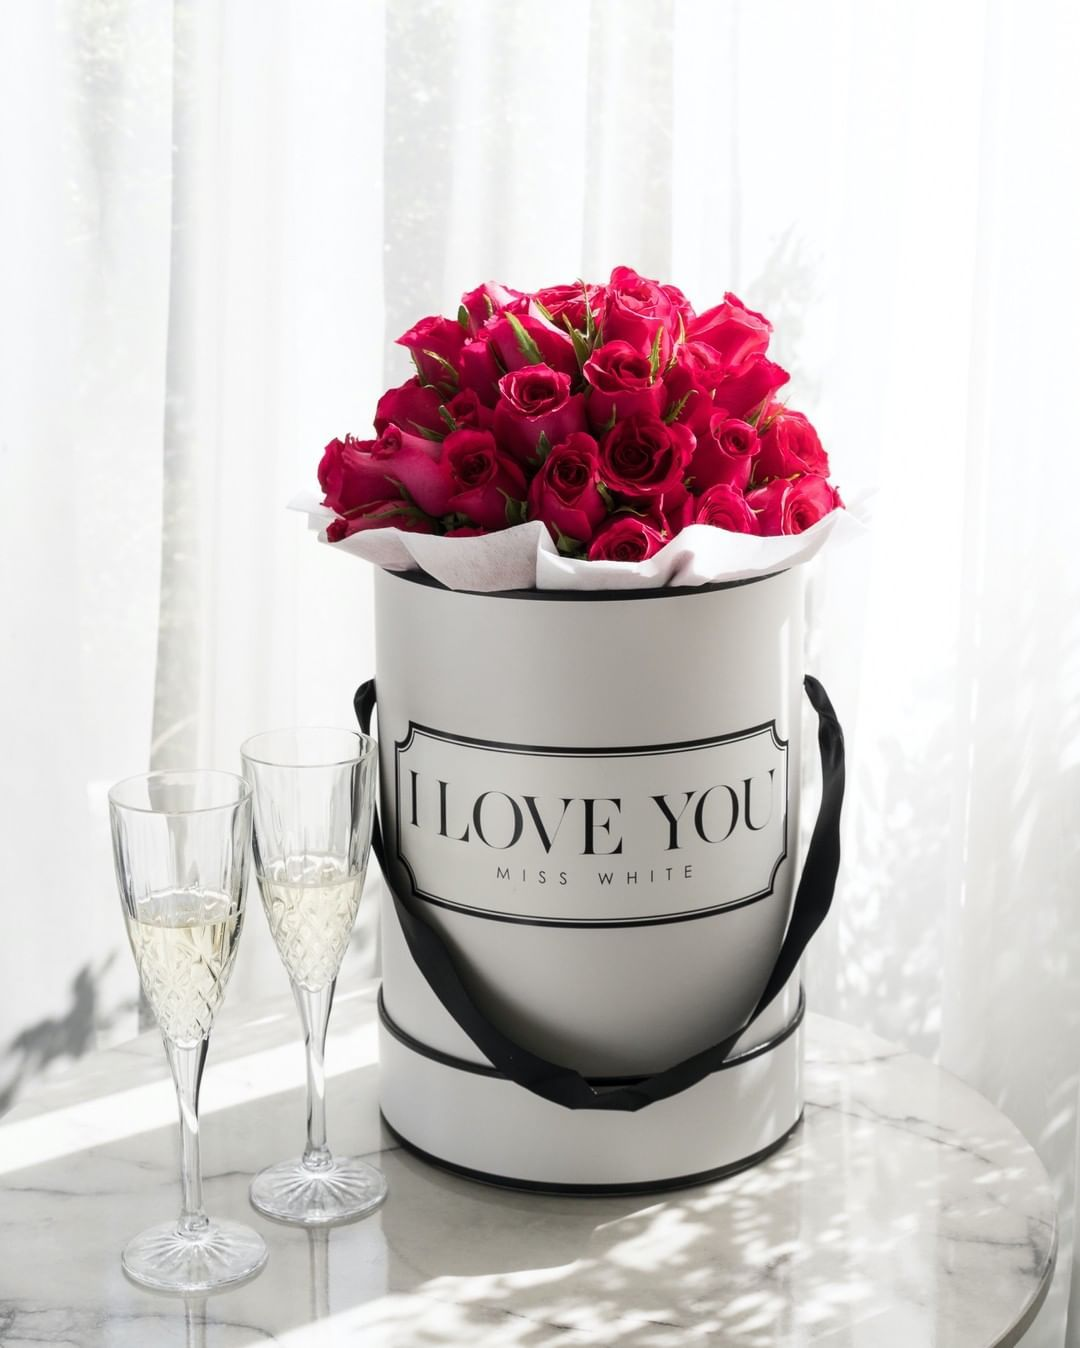 20 Off With Code 2020sale On Instagram R O M A N T I C Who Would Love To Come Home To These After Work Tag Babe Coz W In 2020 Bloom Box Roses Stemless Wine Glass